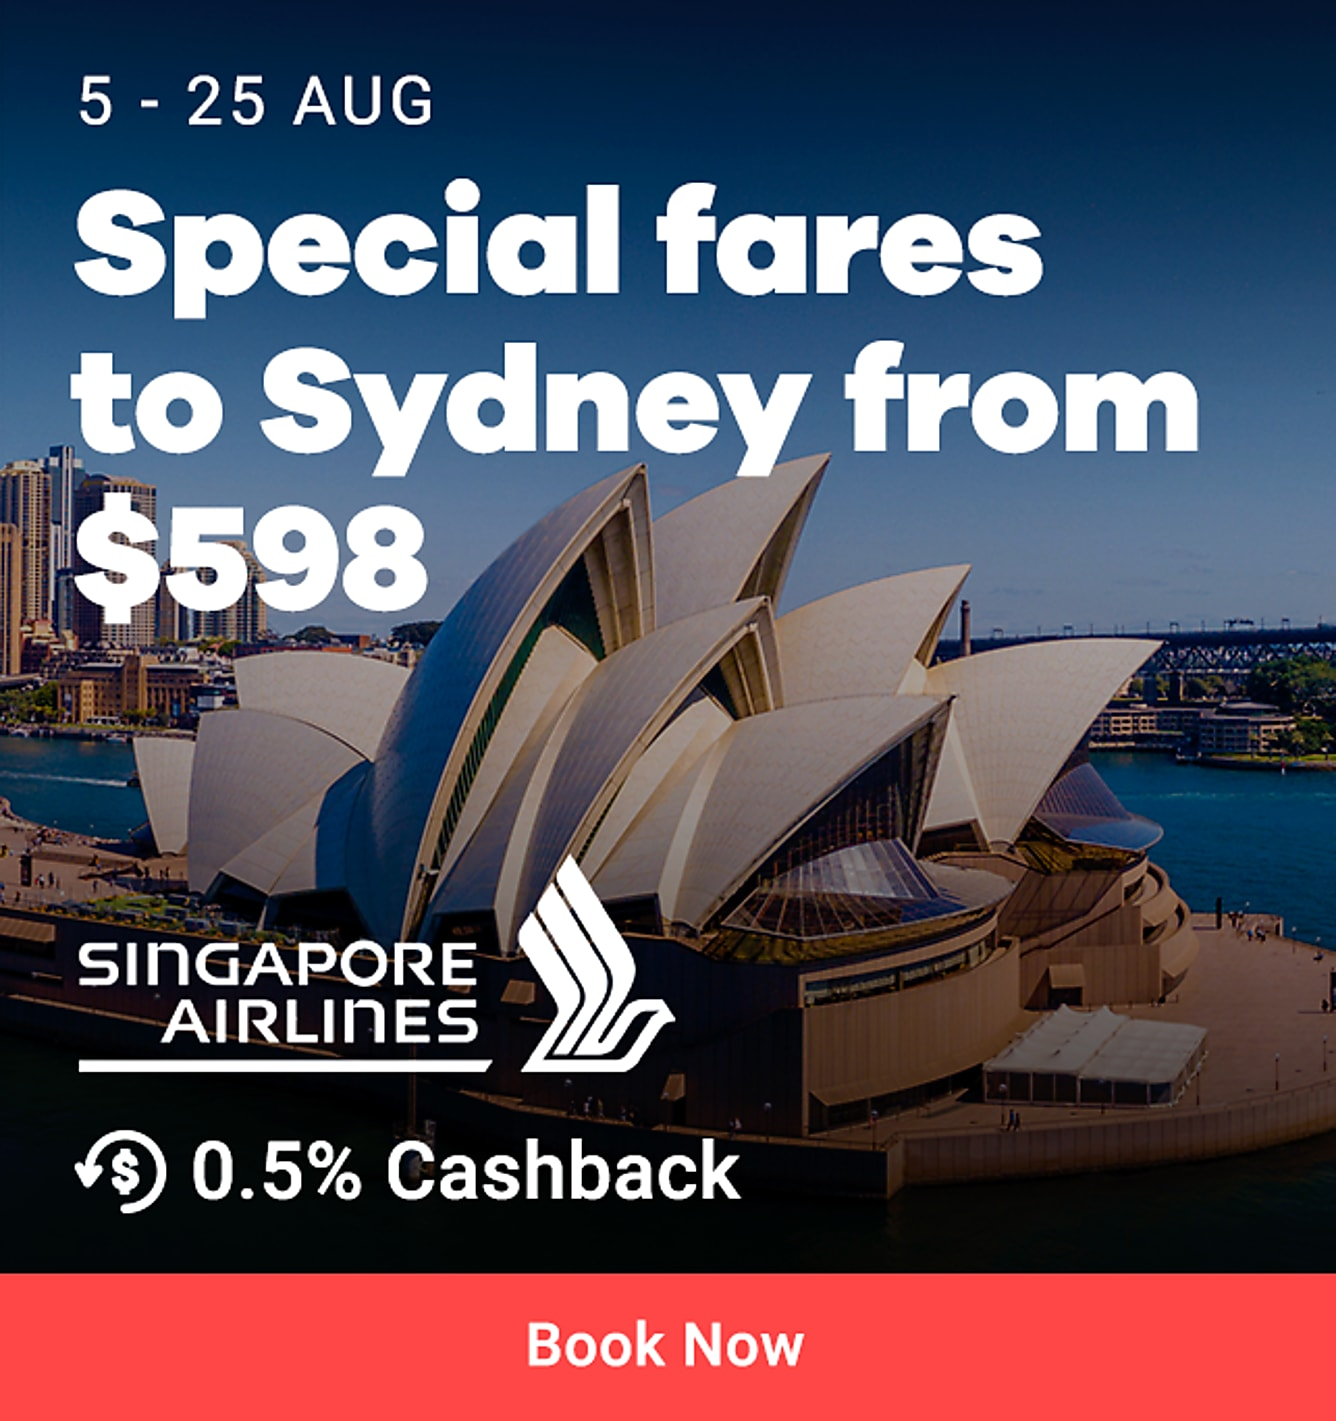 Singapore airlines 5 - 25 Aug.  Special fares to Sydney from SGD598 + 0.5% Cashback.